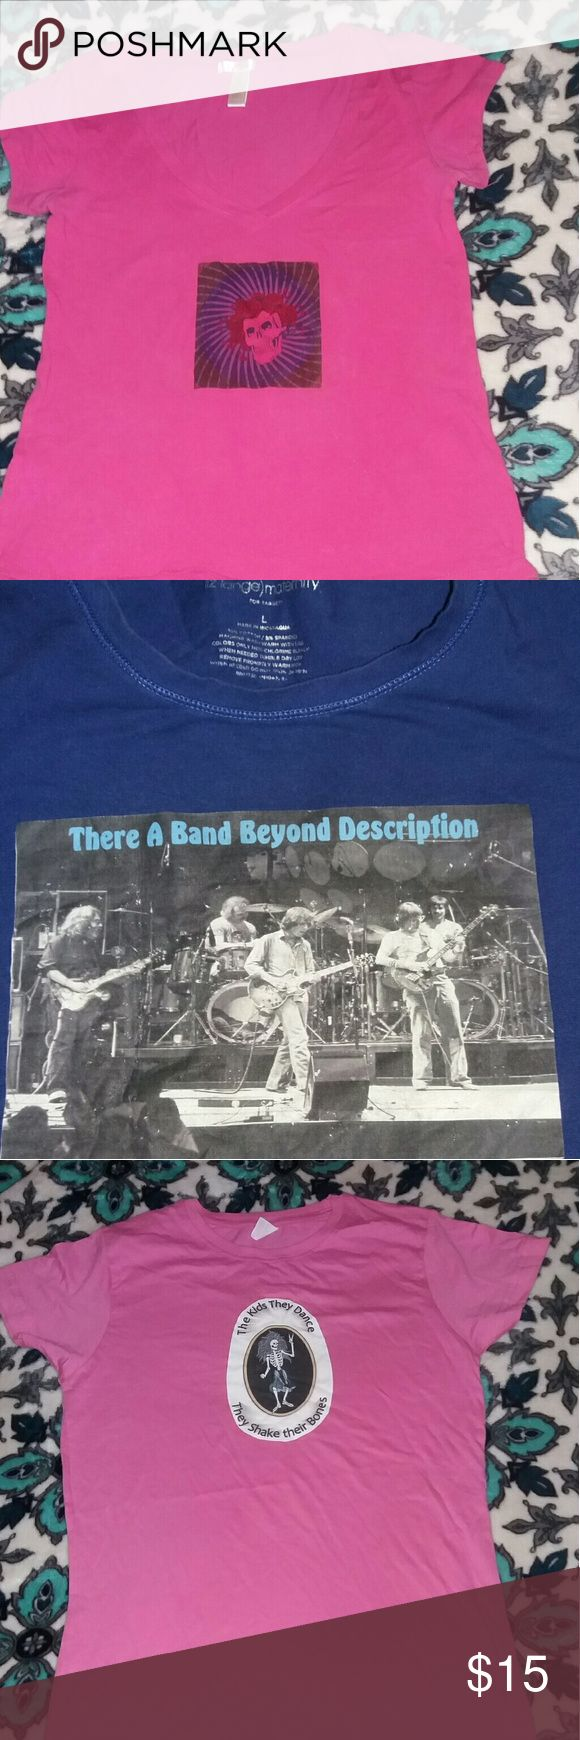 Lot of 4 jam band t-shirts 3 grateful dead shirts  1 is long sleeve & 1 Bob Marley Tshirt Sizes range from a fitted small to a large loose. Super grate deal for all of these!!  Feel free to ask questions Tops